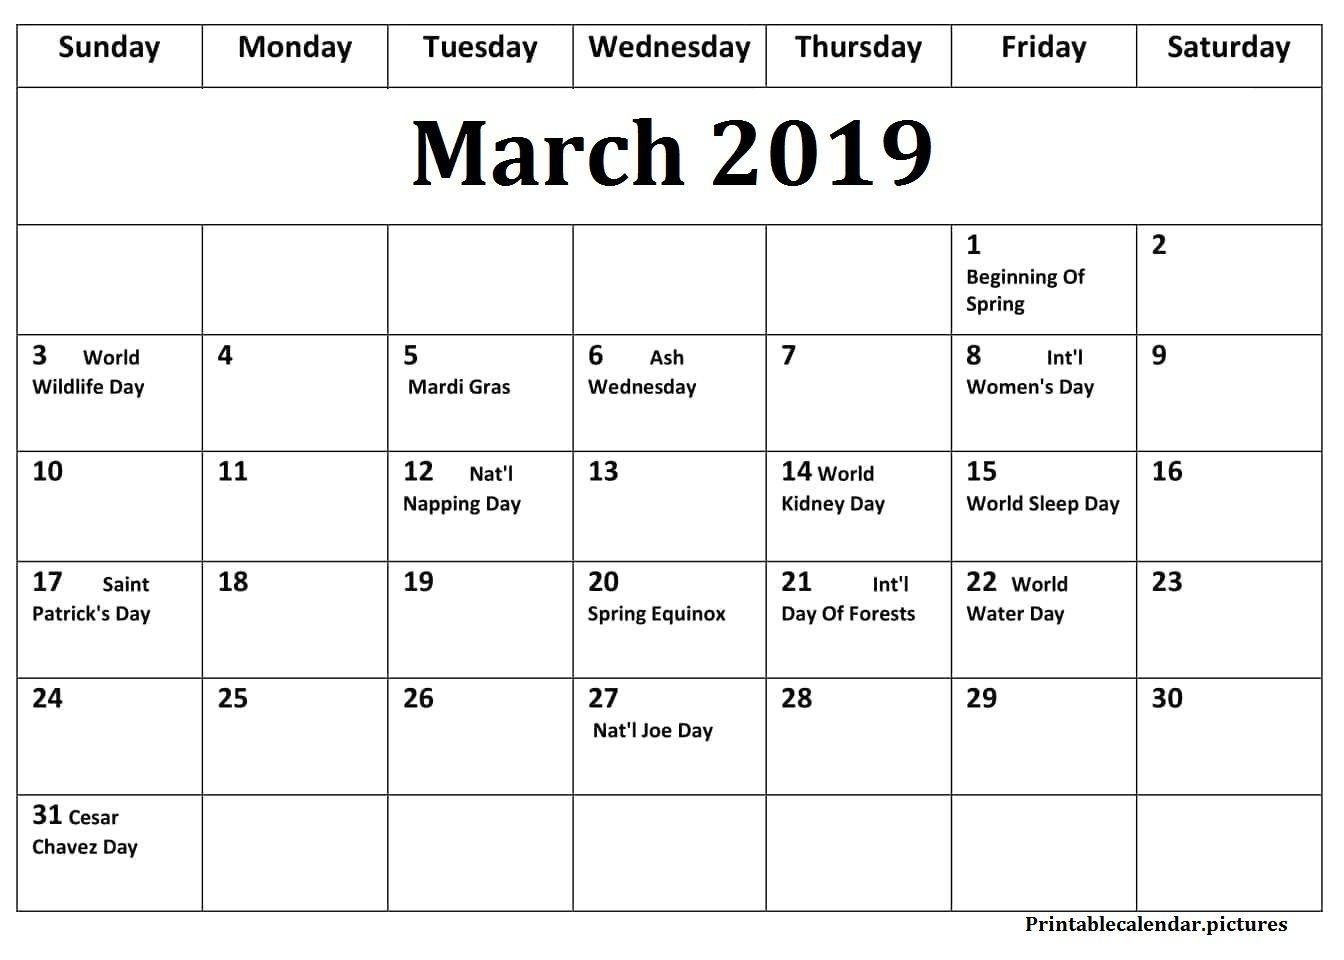 March 2019 Calendar With Holidays Download With Images